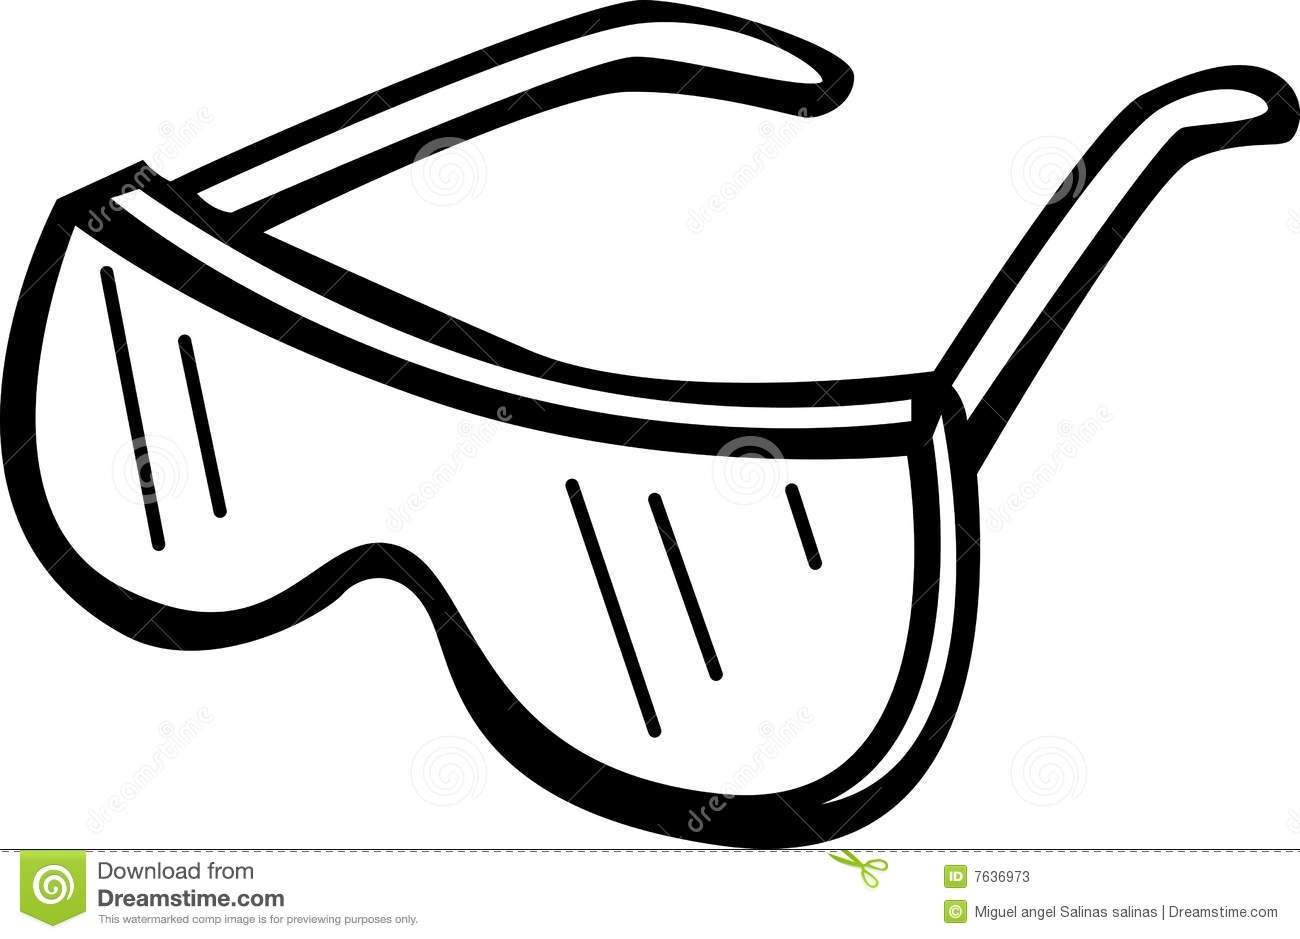 Goggles clipart #12, Download drawings